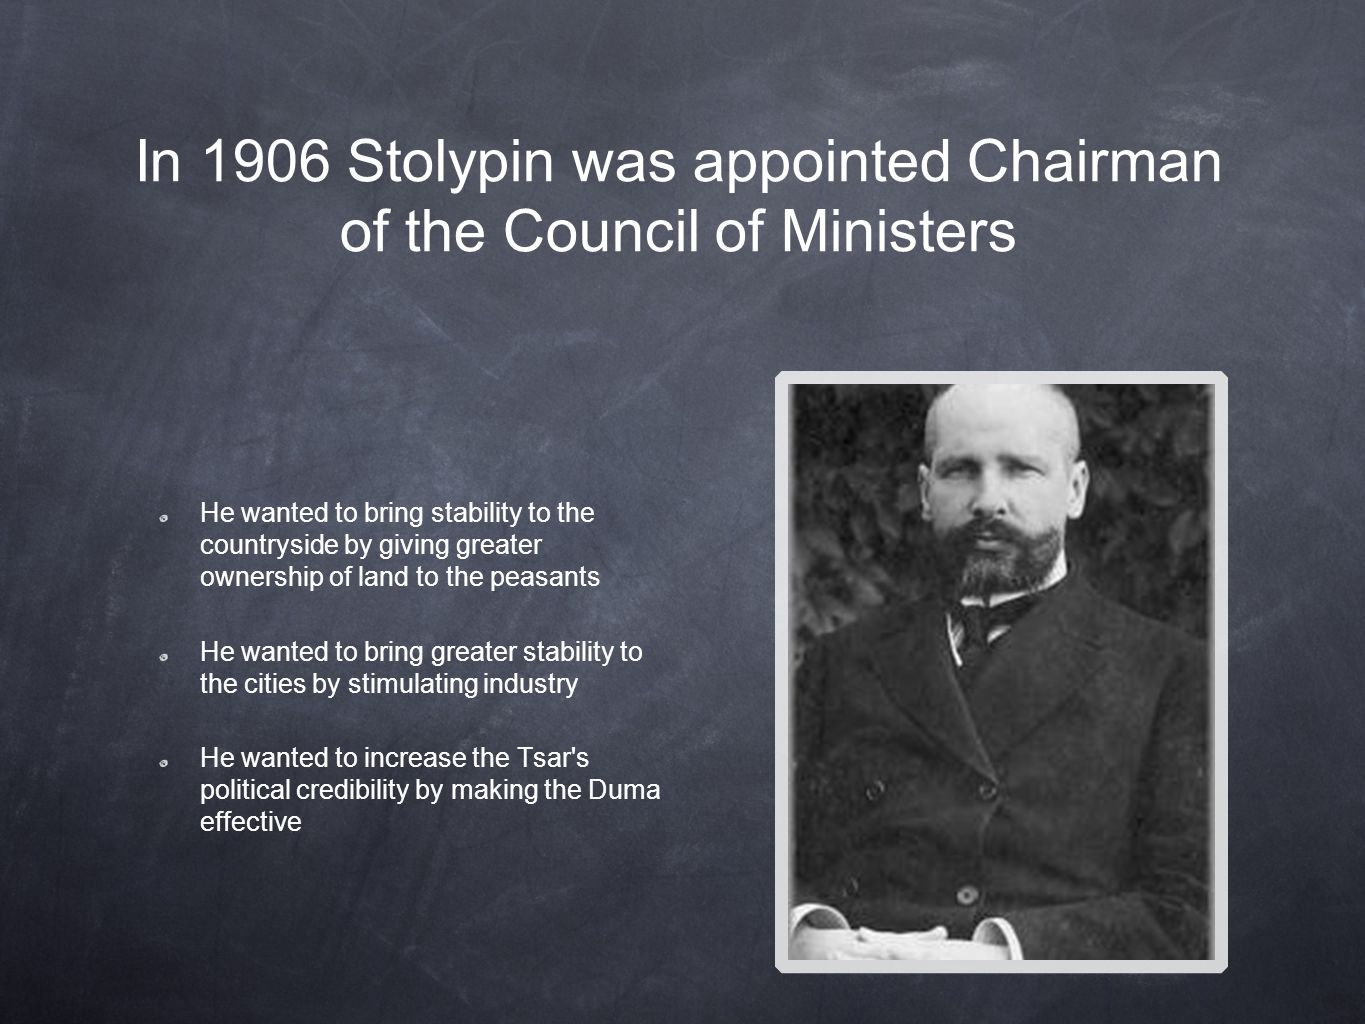 In 1906 Stolypin was appointed Chairman of the Council of Ministers He wanted to bring stability to the countryside by giving greater ownership of land to the peasants He wanted to bring greater stability to the cities by stimulating industry He wanted to increase the Tsar s political credibility by making the Duma effective